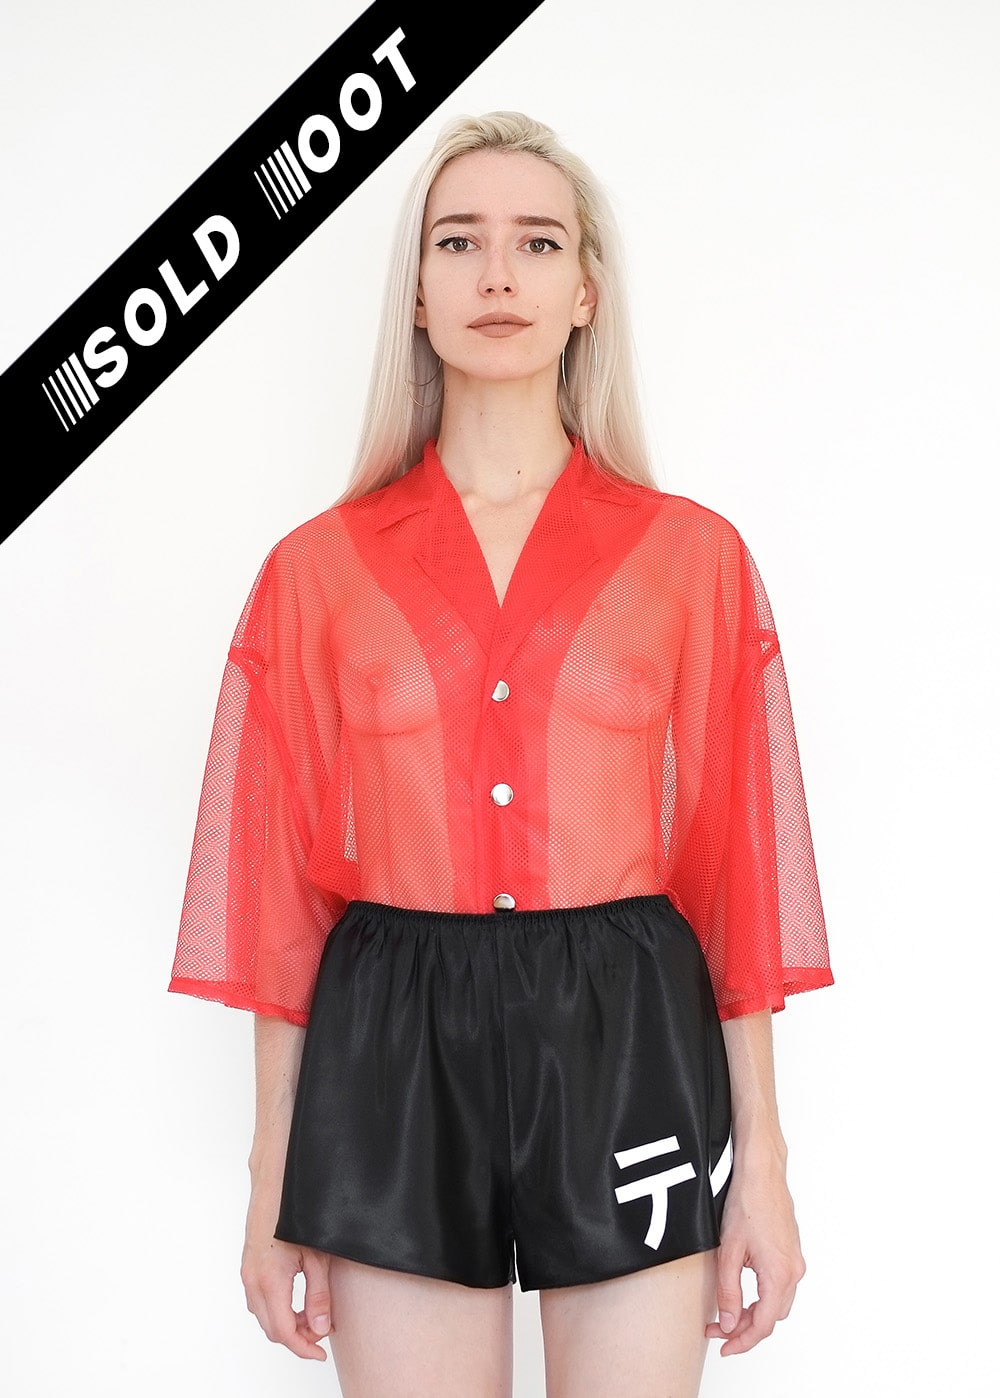 LIMITED ED Red Mesh Shirt 354